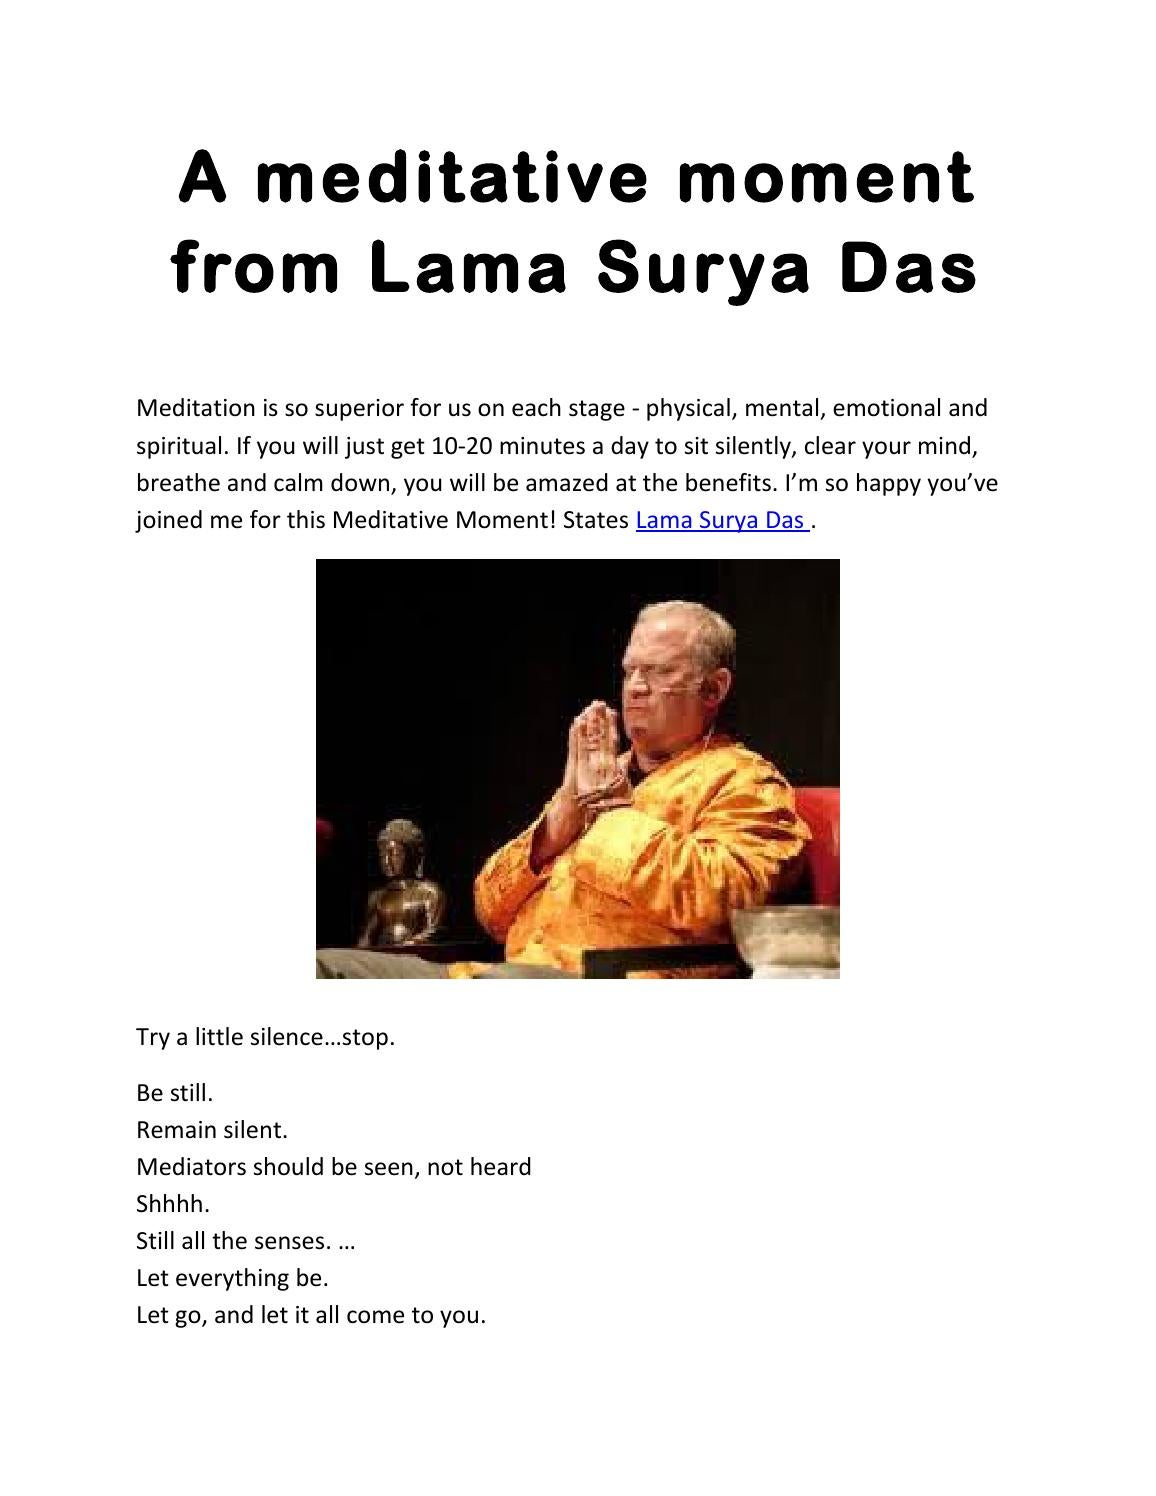 A Meditative Moment From Lama Surya Das By Lamasuryadivorce Issuu